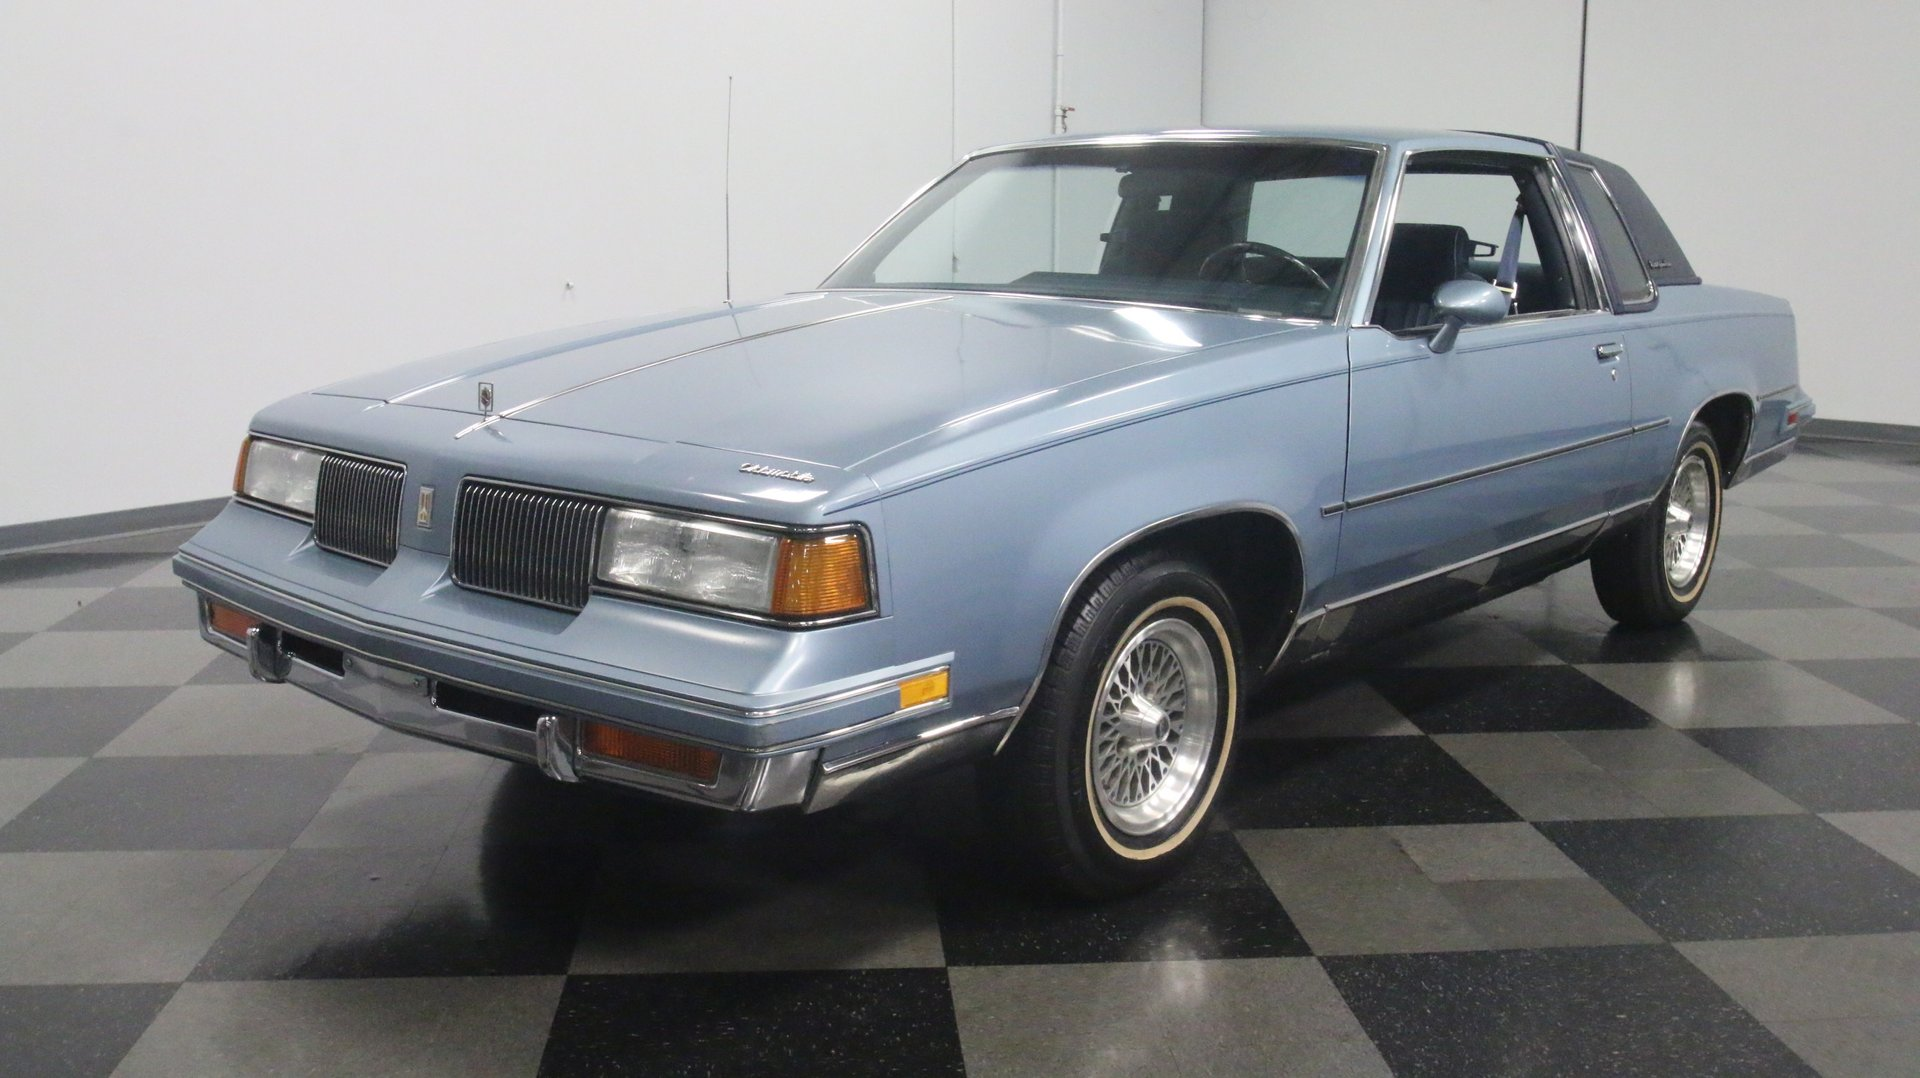 1988 Oldsmobile Cutlass | Streetside Classics - The Nation's